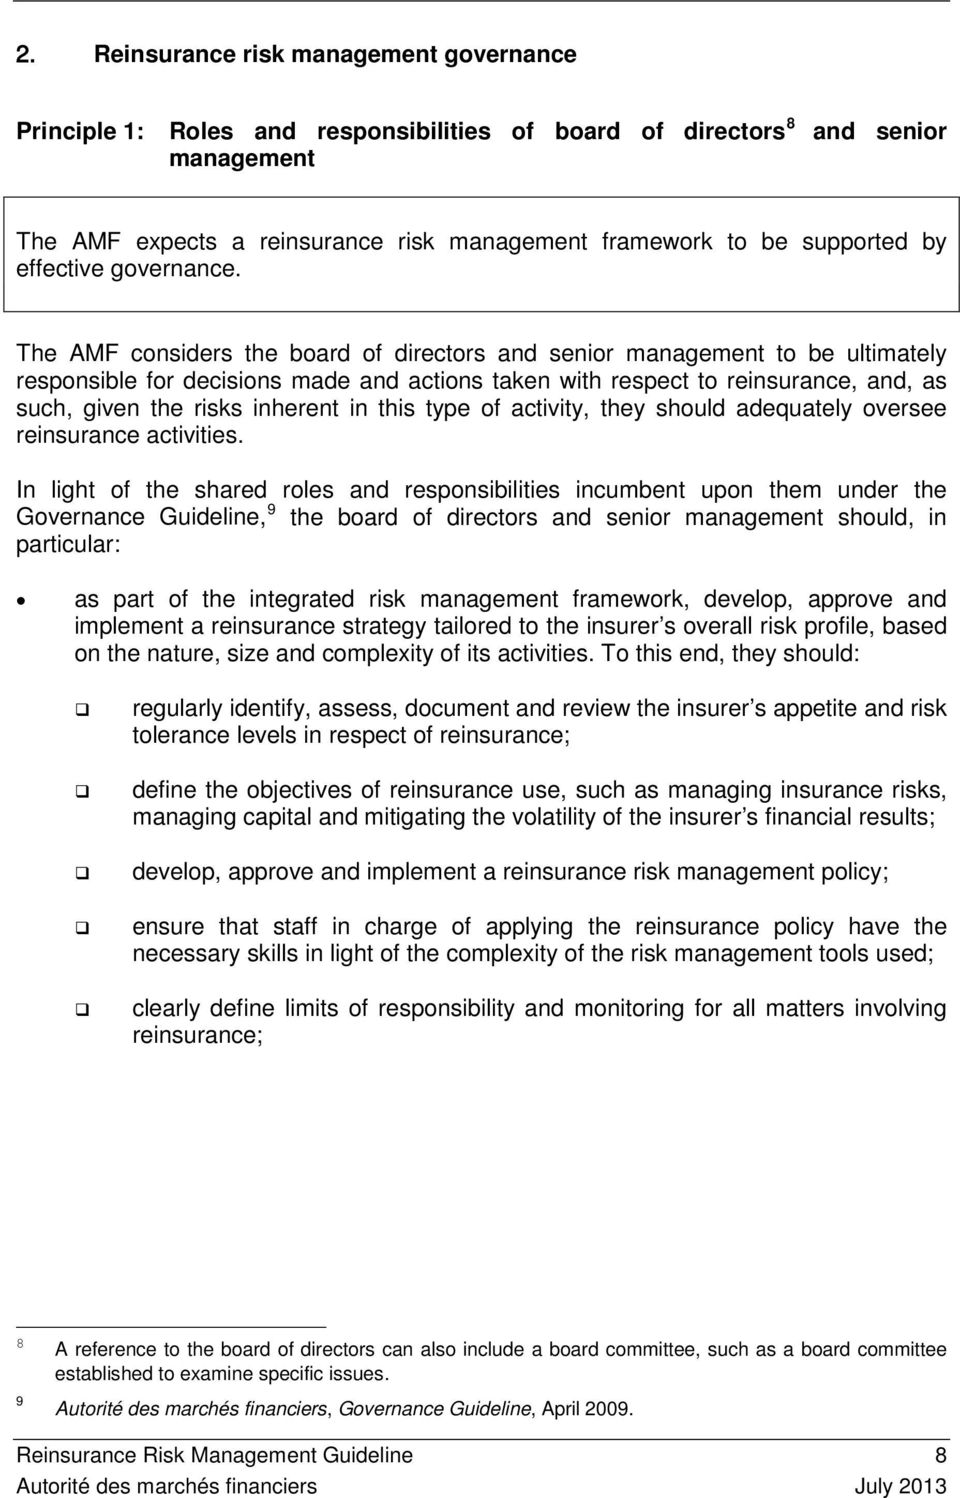 The AMF considers the board of directors and senior management to be ultimately responsible for decisions made and actions taken with respect to reinsurance, and, as such, given the risks inherent in